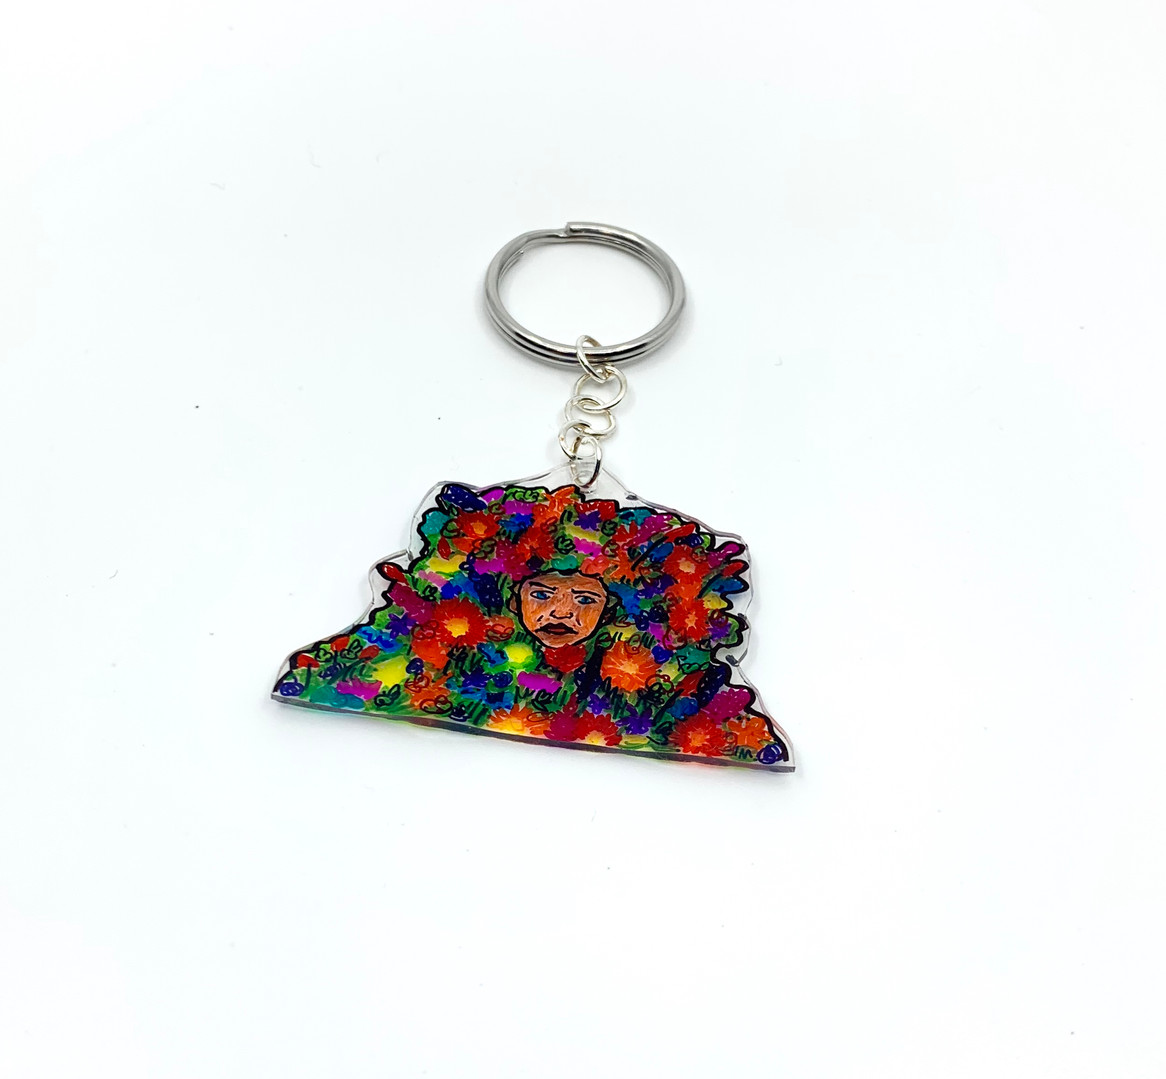 May Queen Keychain